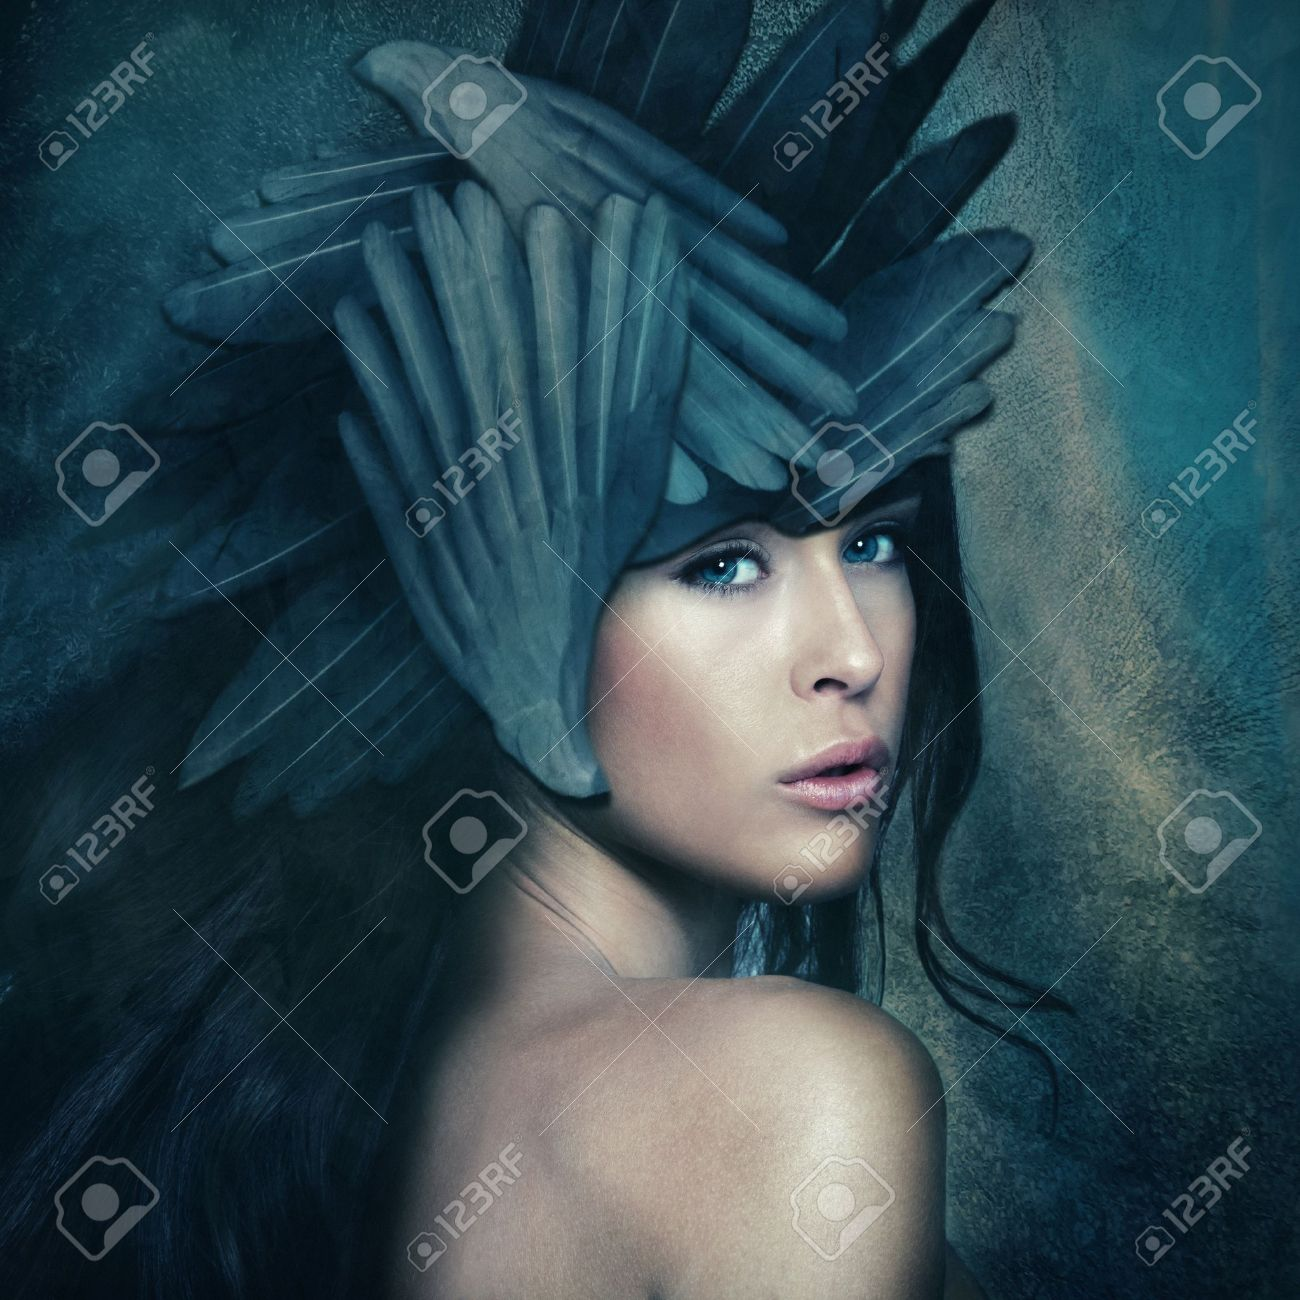 fantasy warrior goddess with helmet, small amount of grain added Standard-Bild - 19753291